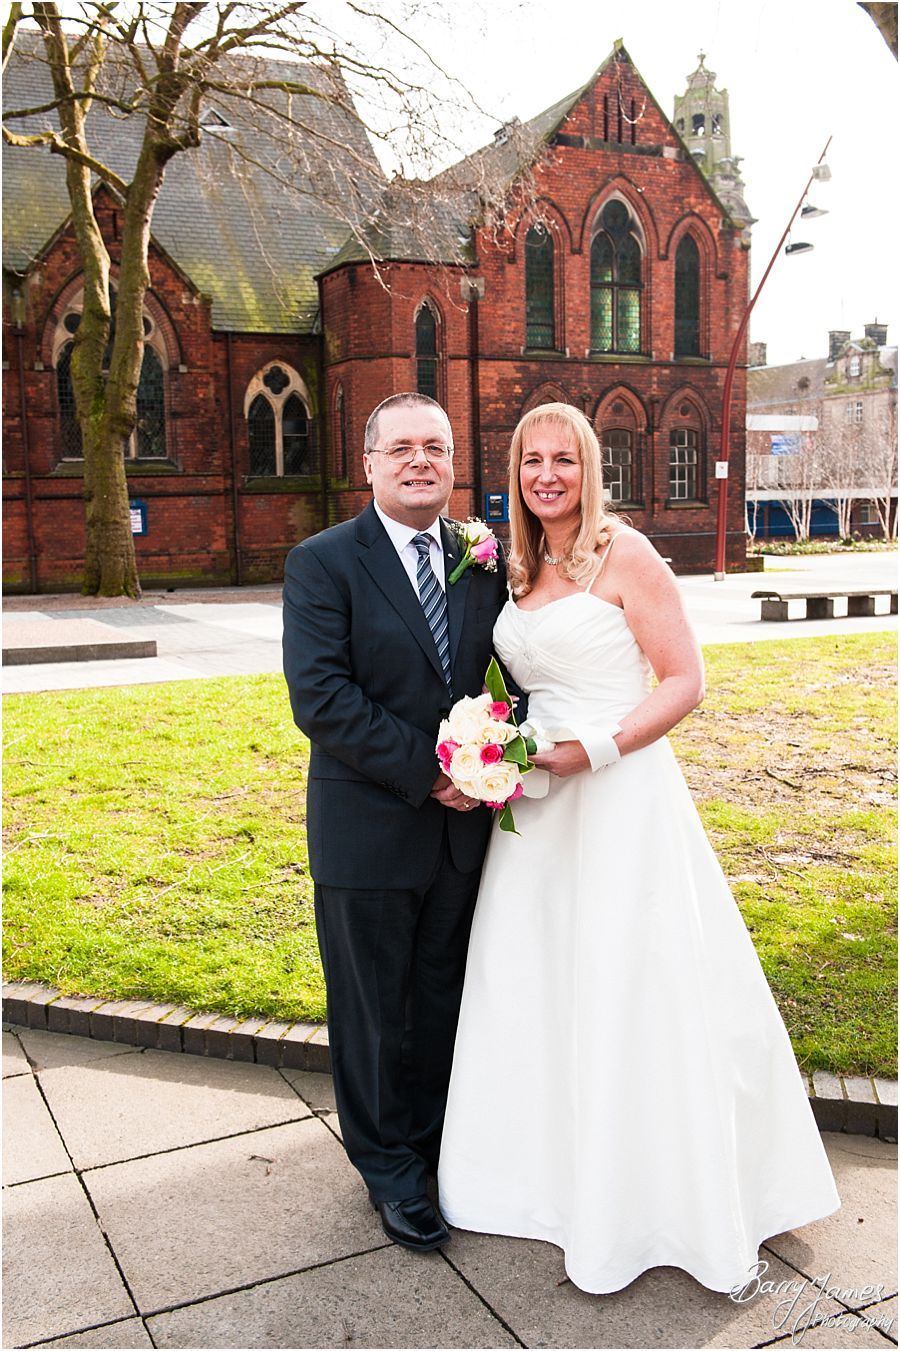 Recommended wedding photographer at Walsall Registry Office in Walsall by Professional Wedding Photographer Barry James